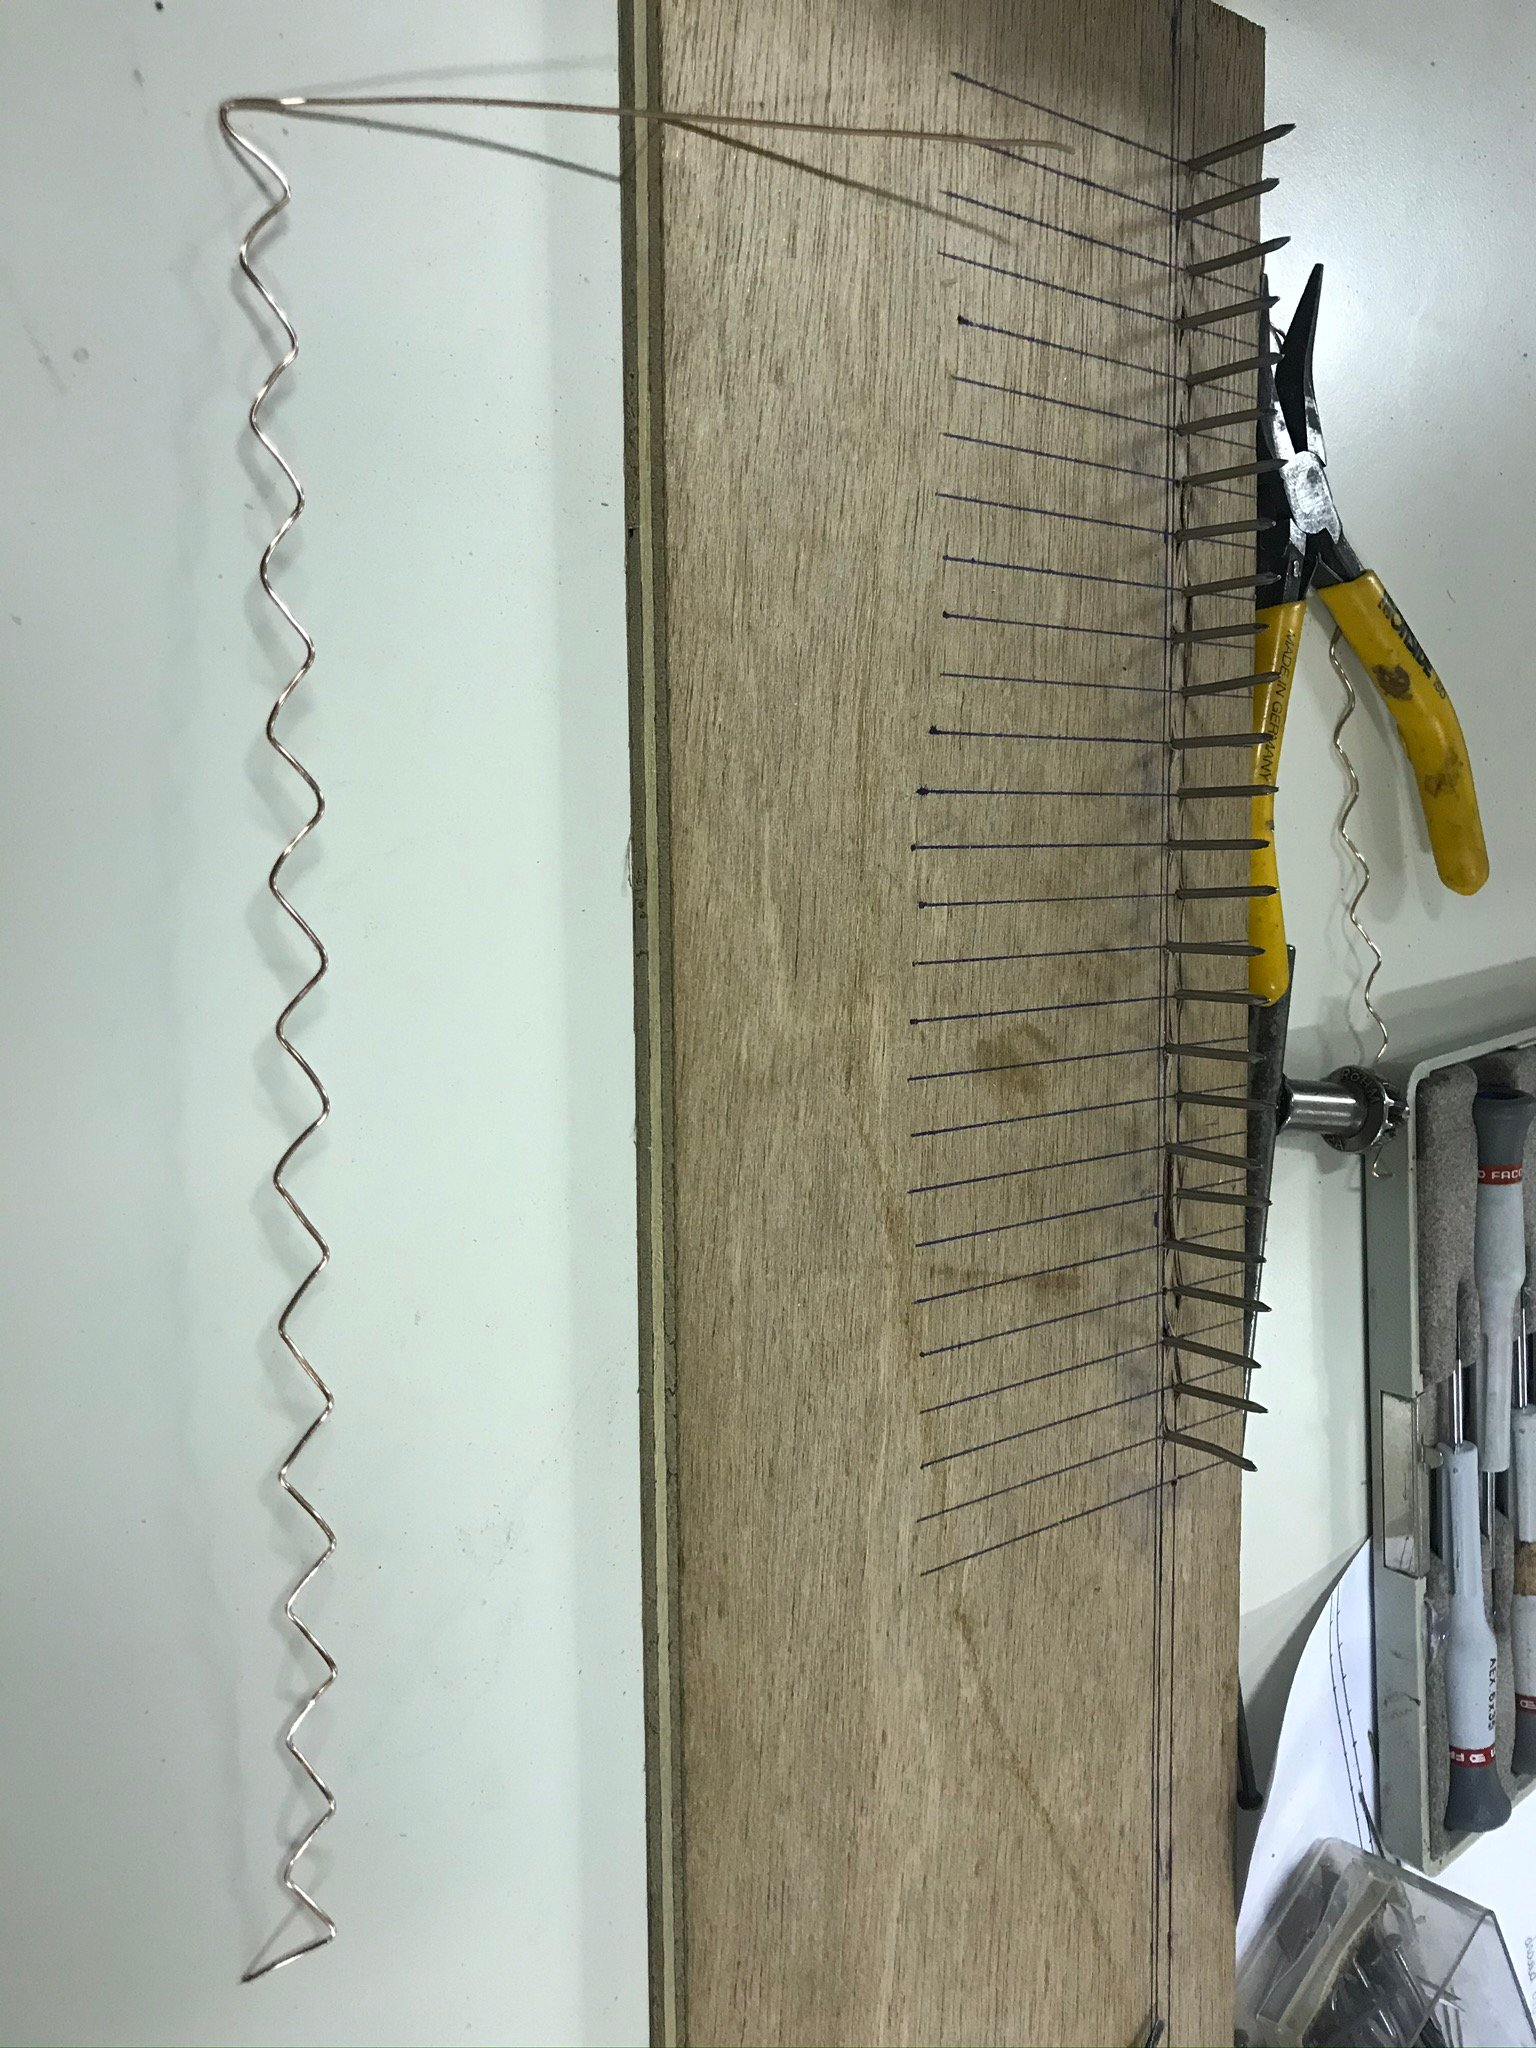 Bending the 0,8mm wire